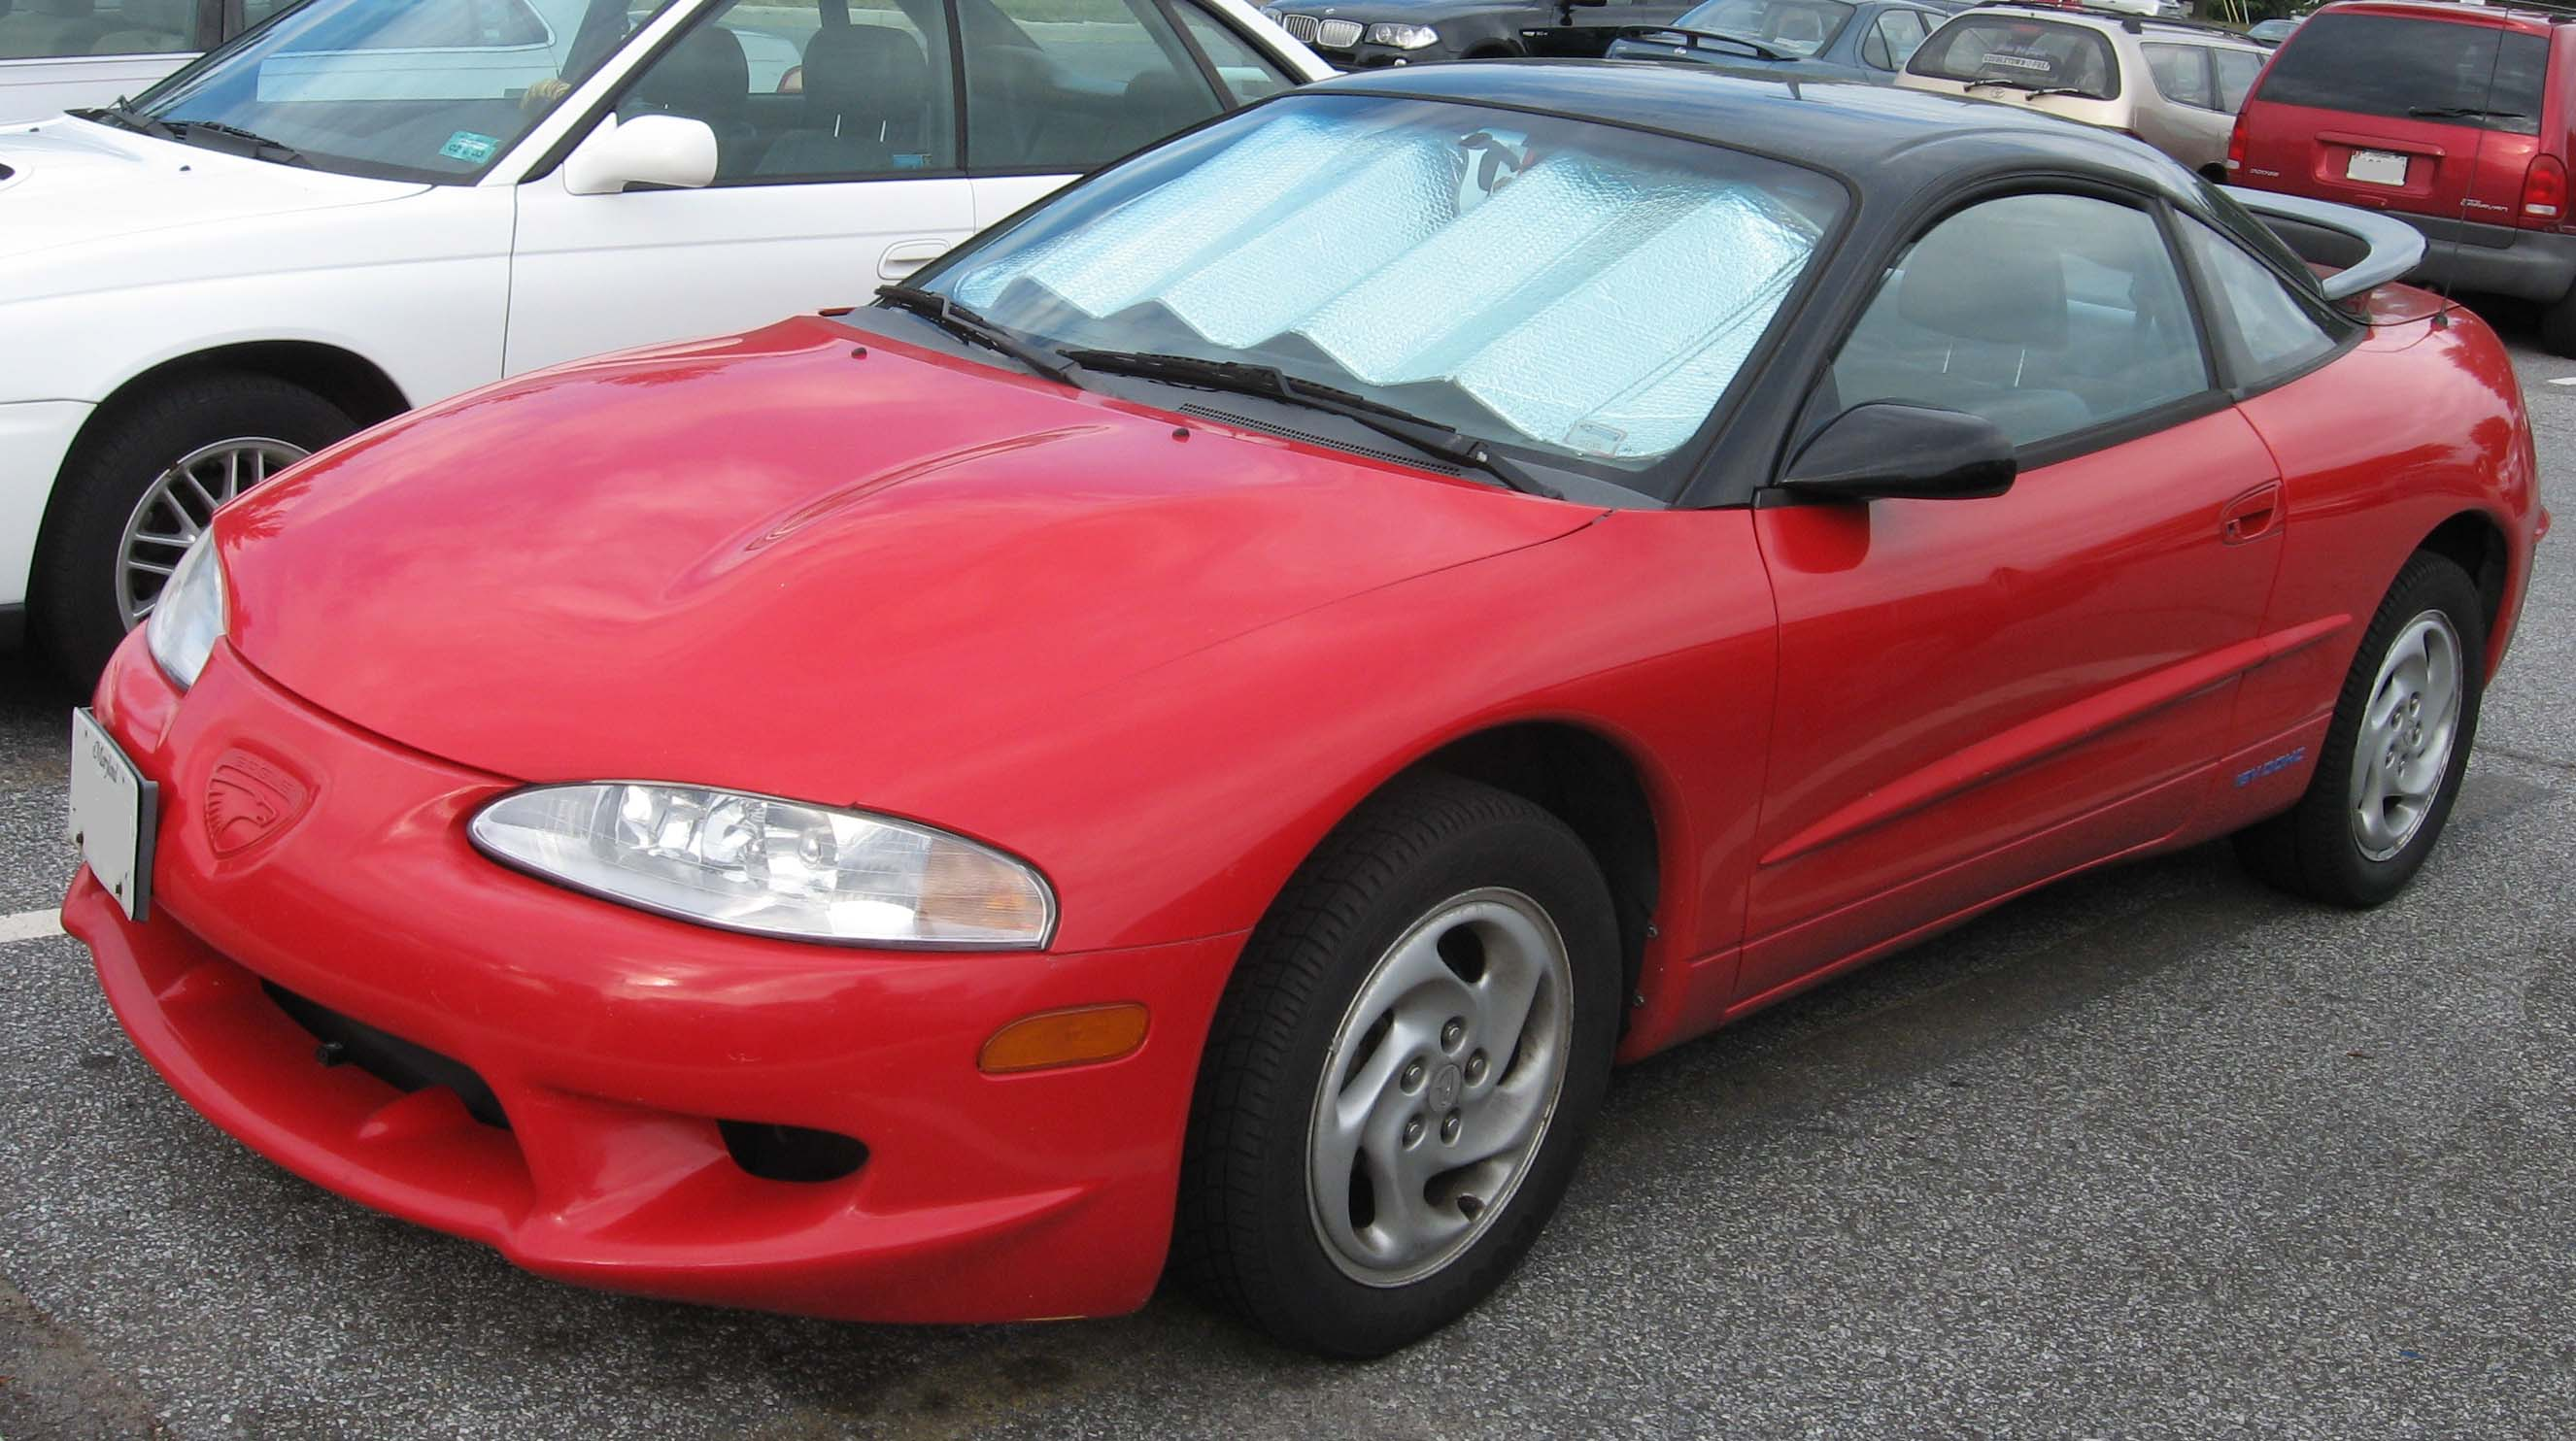 Eagle Talon #7